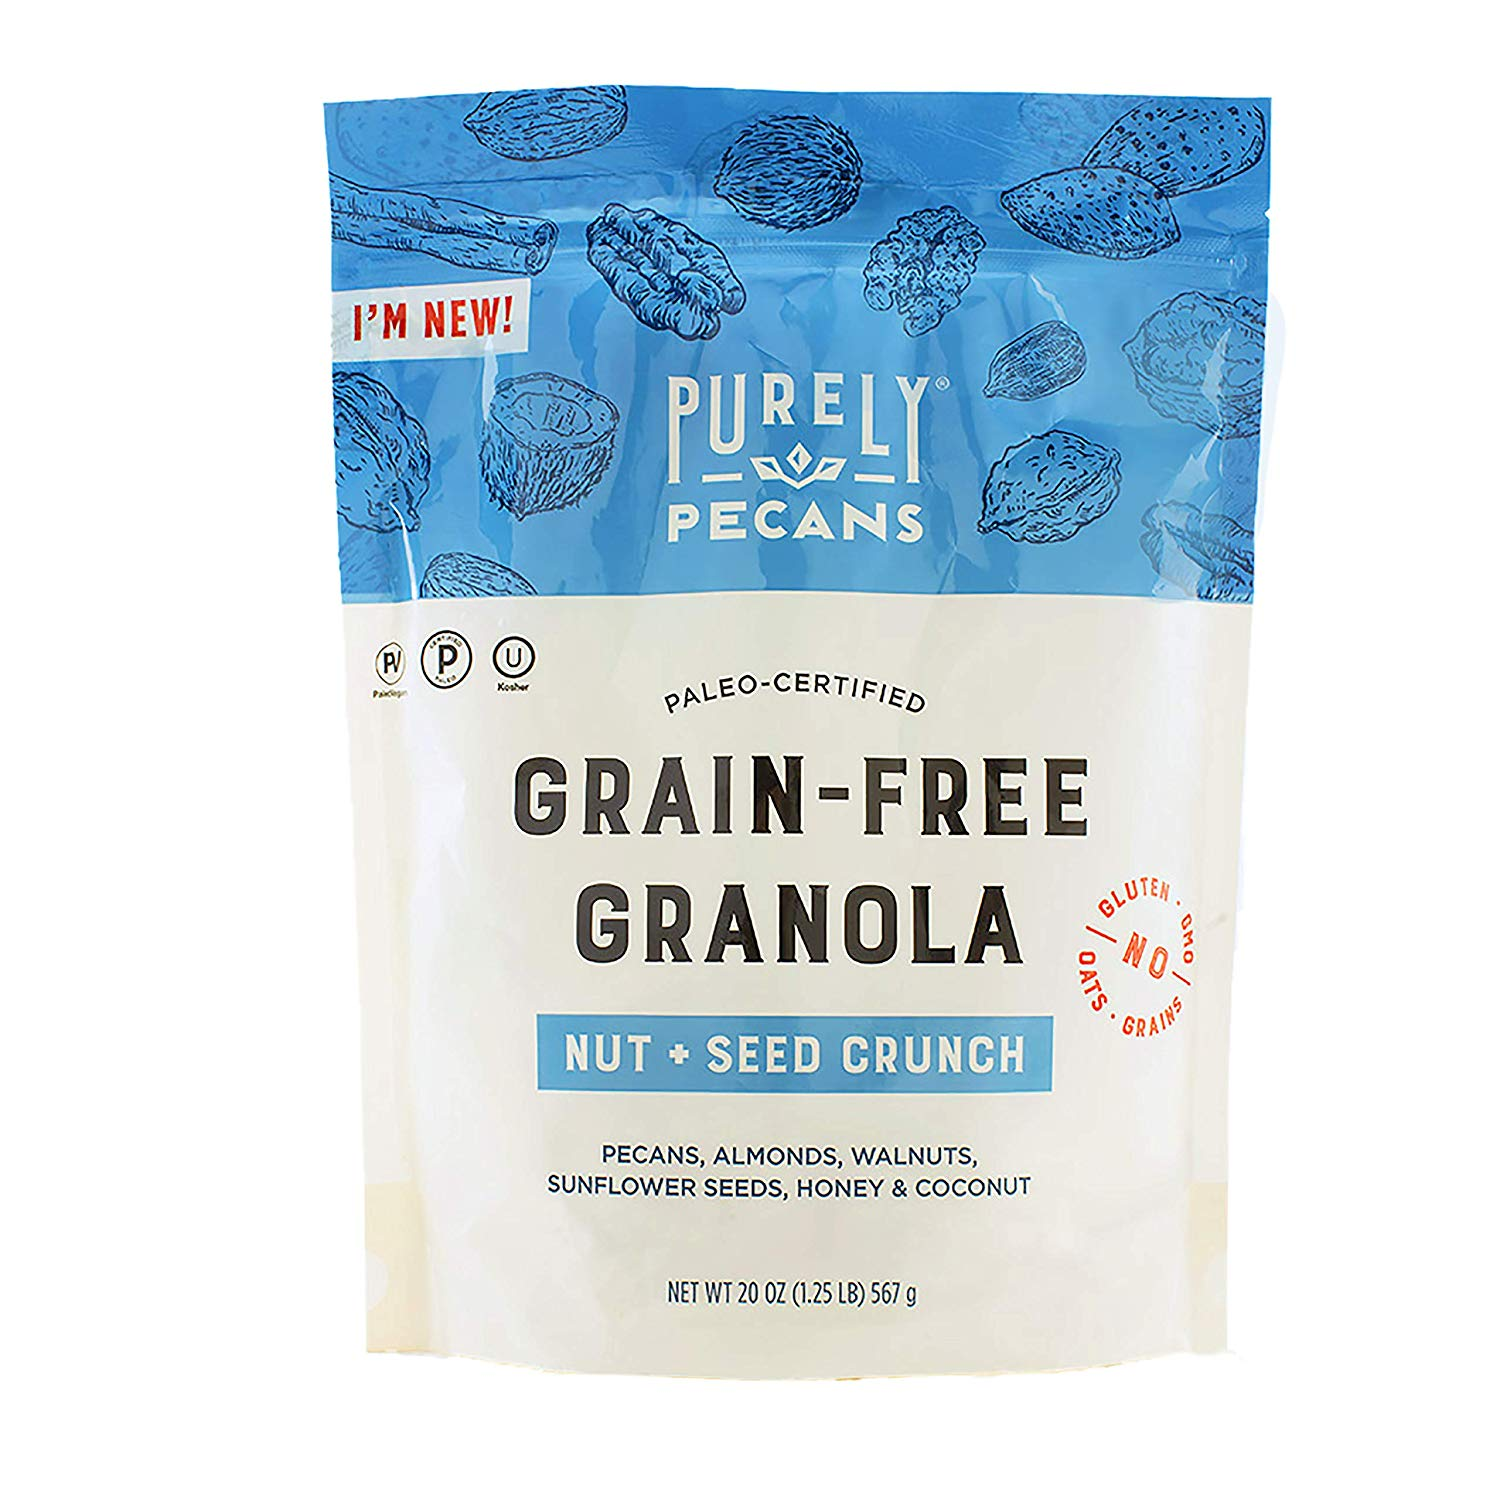 Nut + Seed Crunch - Grain-free Granola - Purely Pecans - Certified Paleo, PaleoVegan by the Paleo Foundation